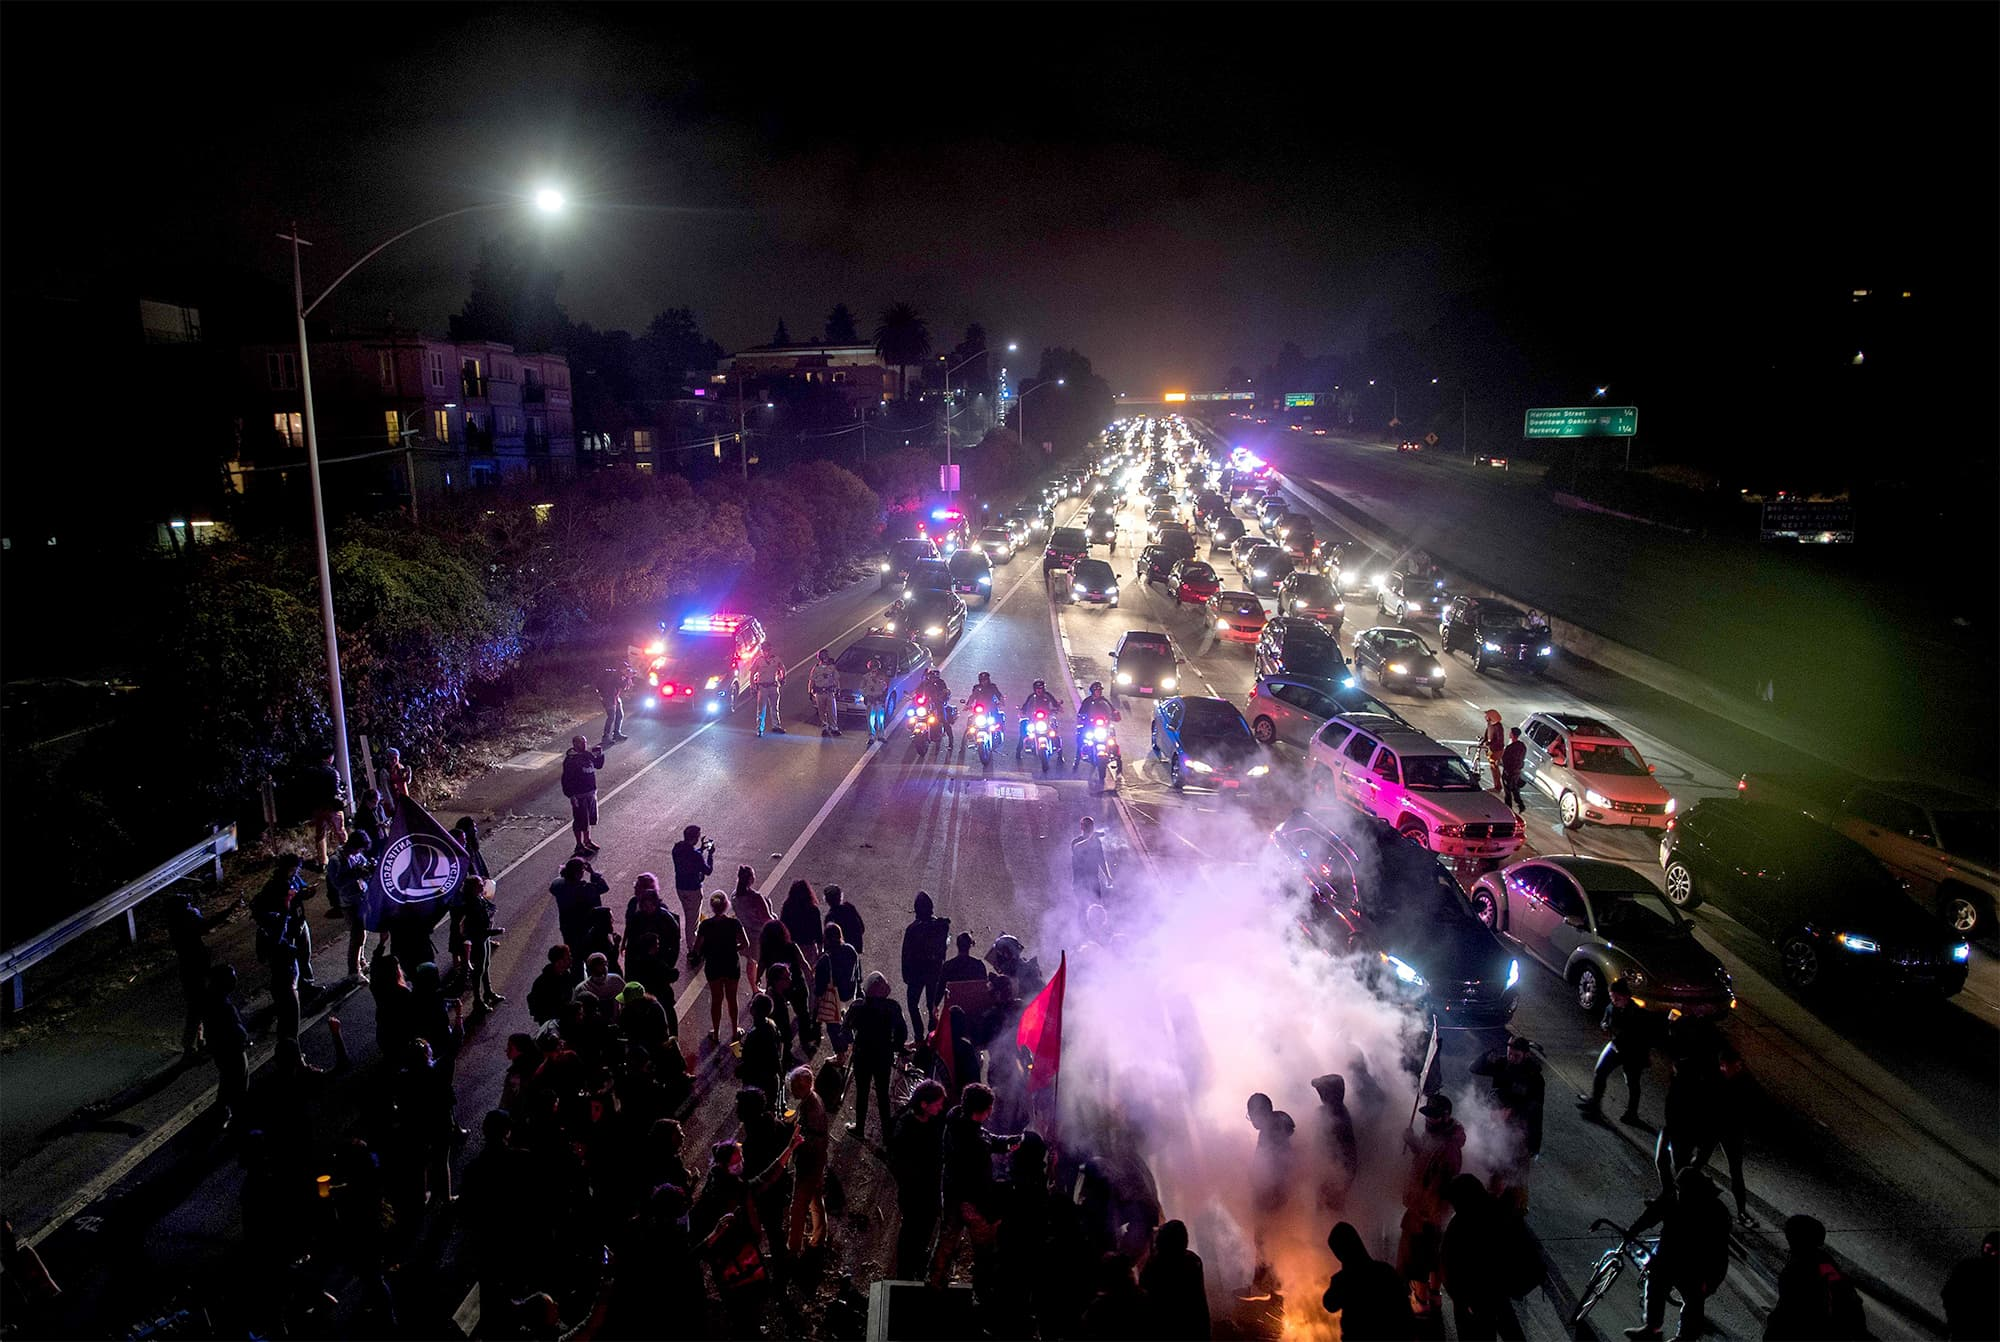 Protesters block both directions of the Interstate 580 freeway during a rally against racism in Oakland. ─ AFP